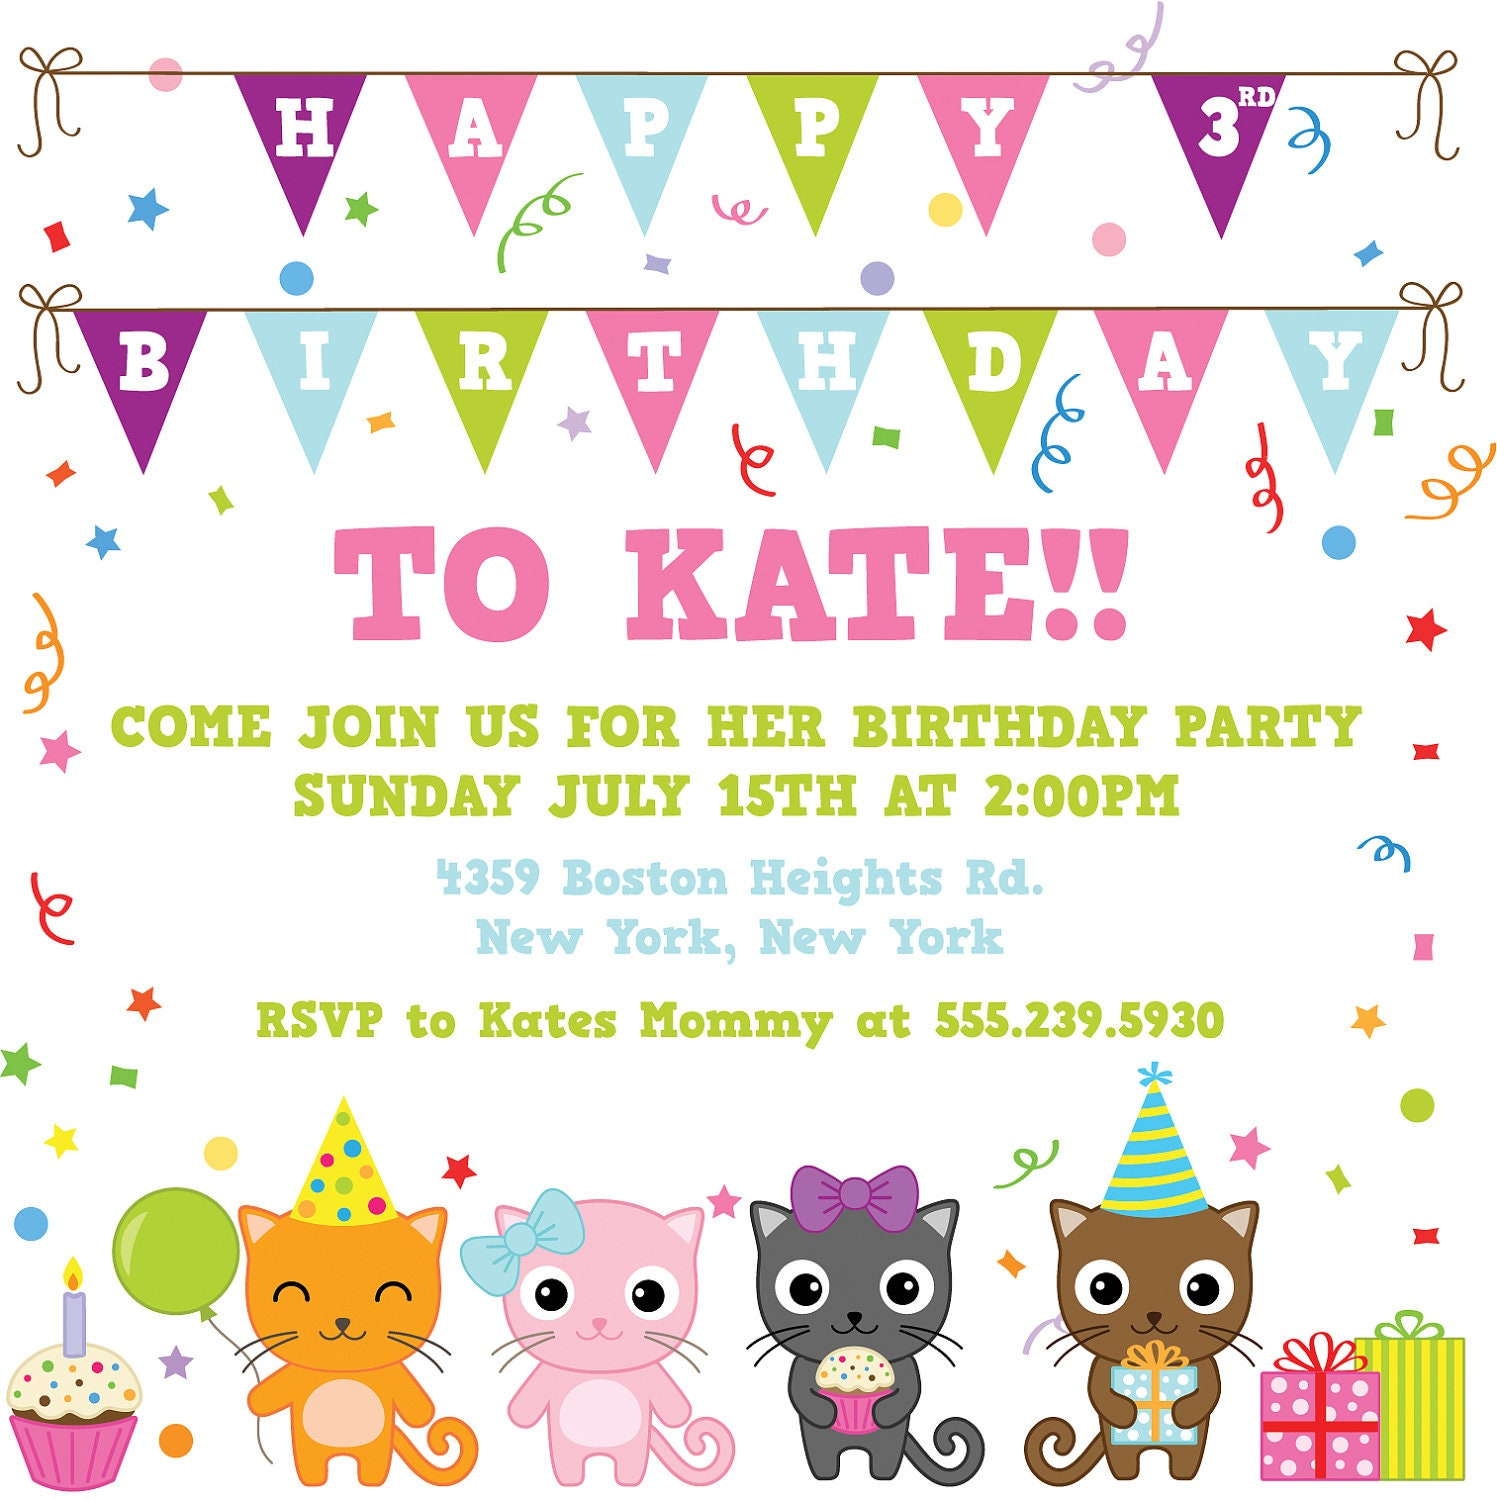 Monster High Party Invitations Printable is luxury invitations template